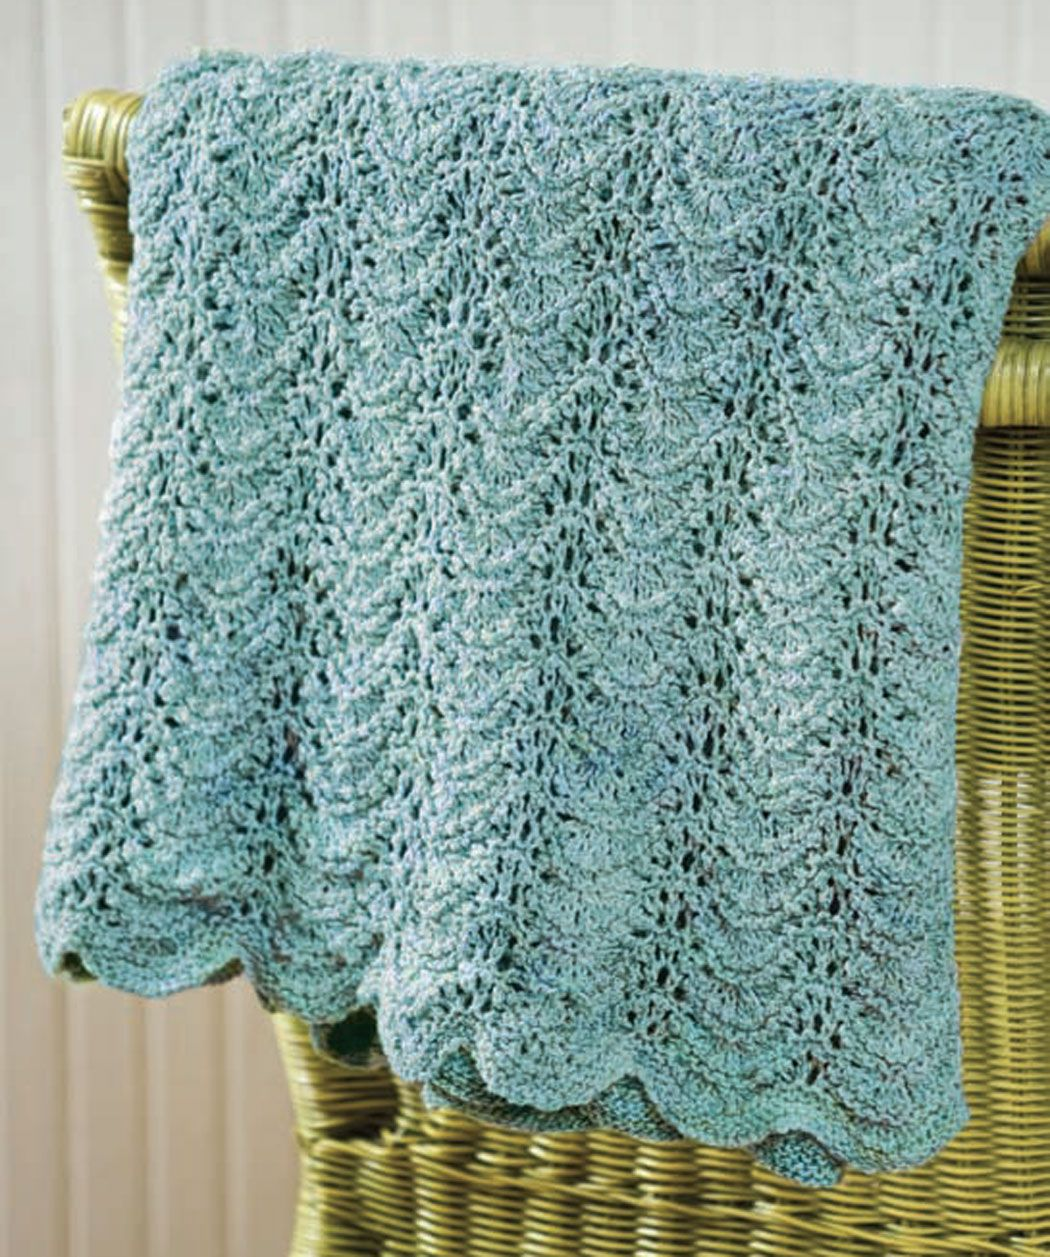 Knit seaside waves free pattern knitting pinterest free knit seaside waves free pattern bankloansurffo Image collections